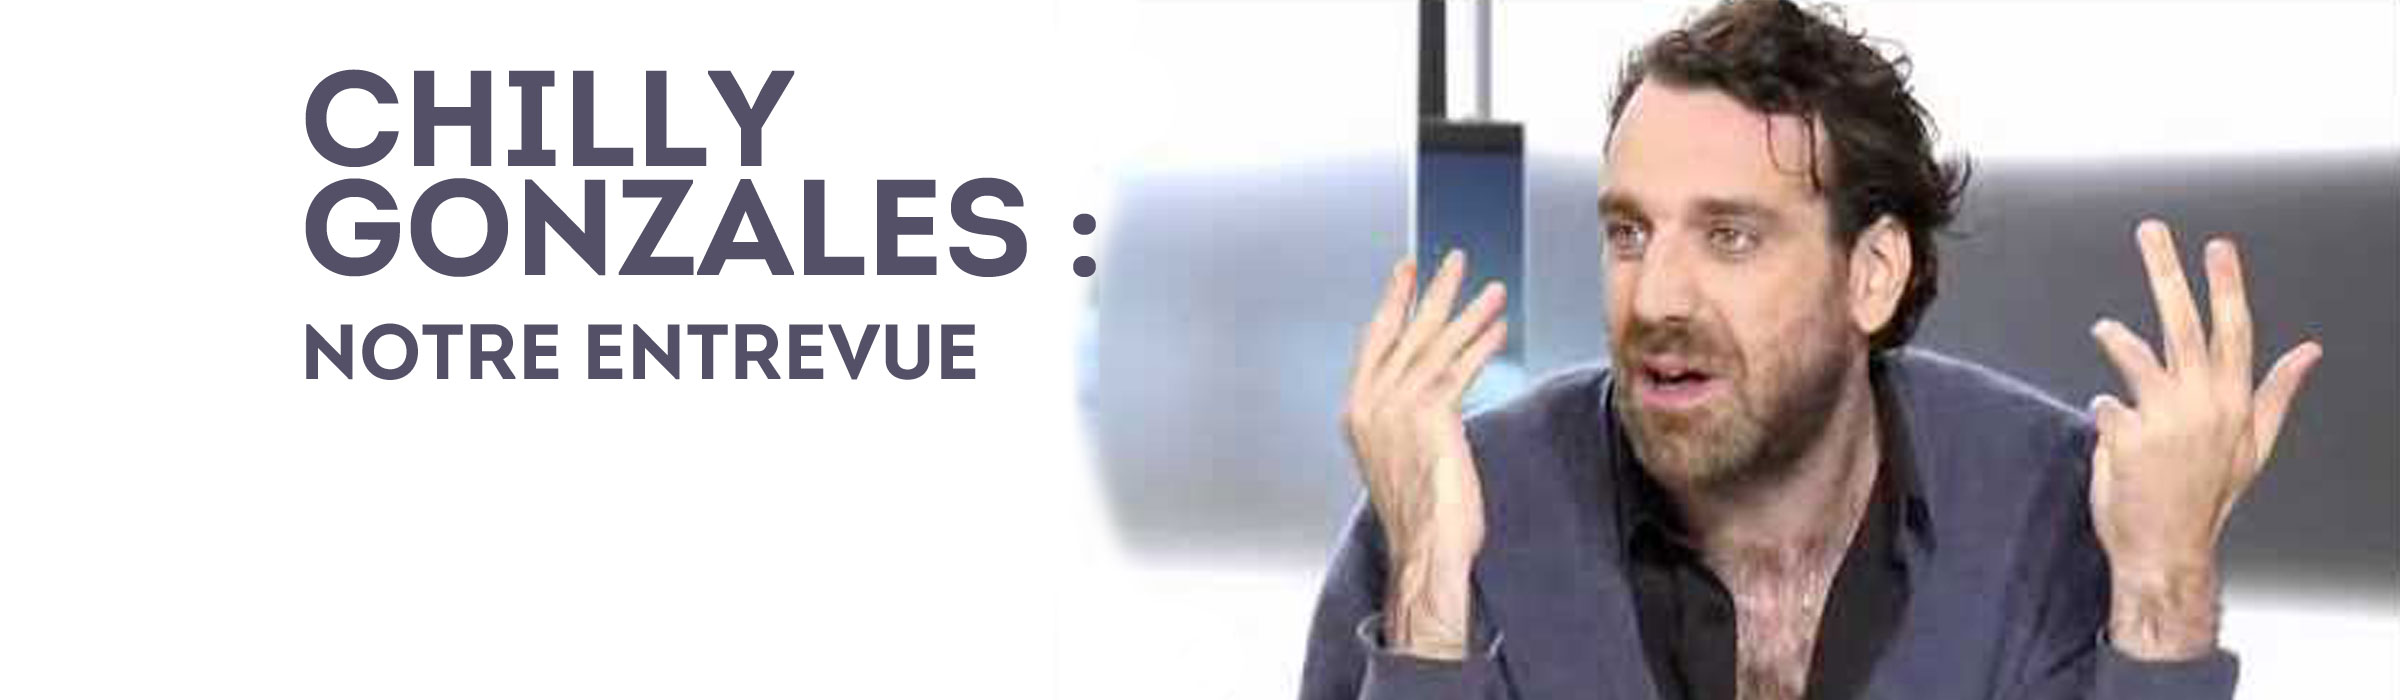 Chilly Gonzales : Notre entrevue